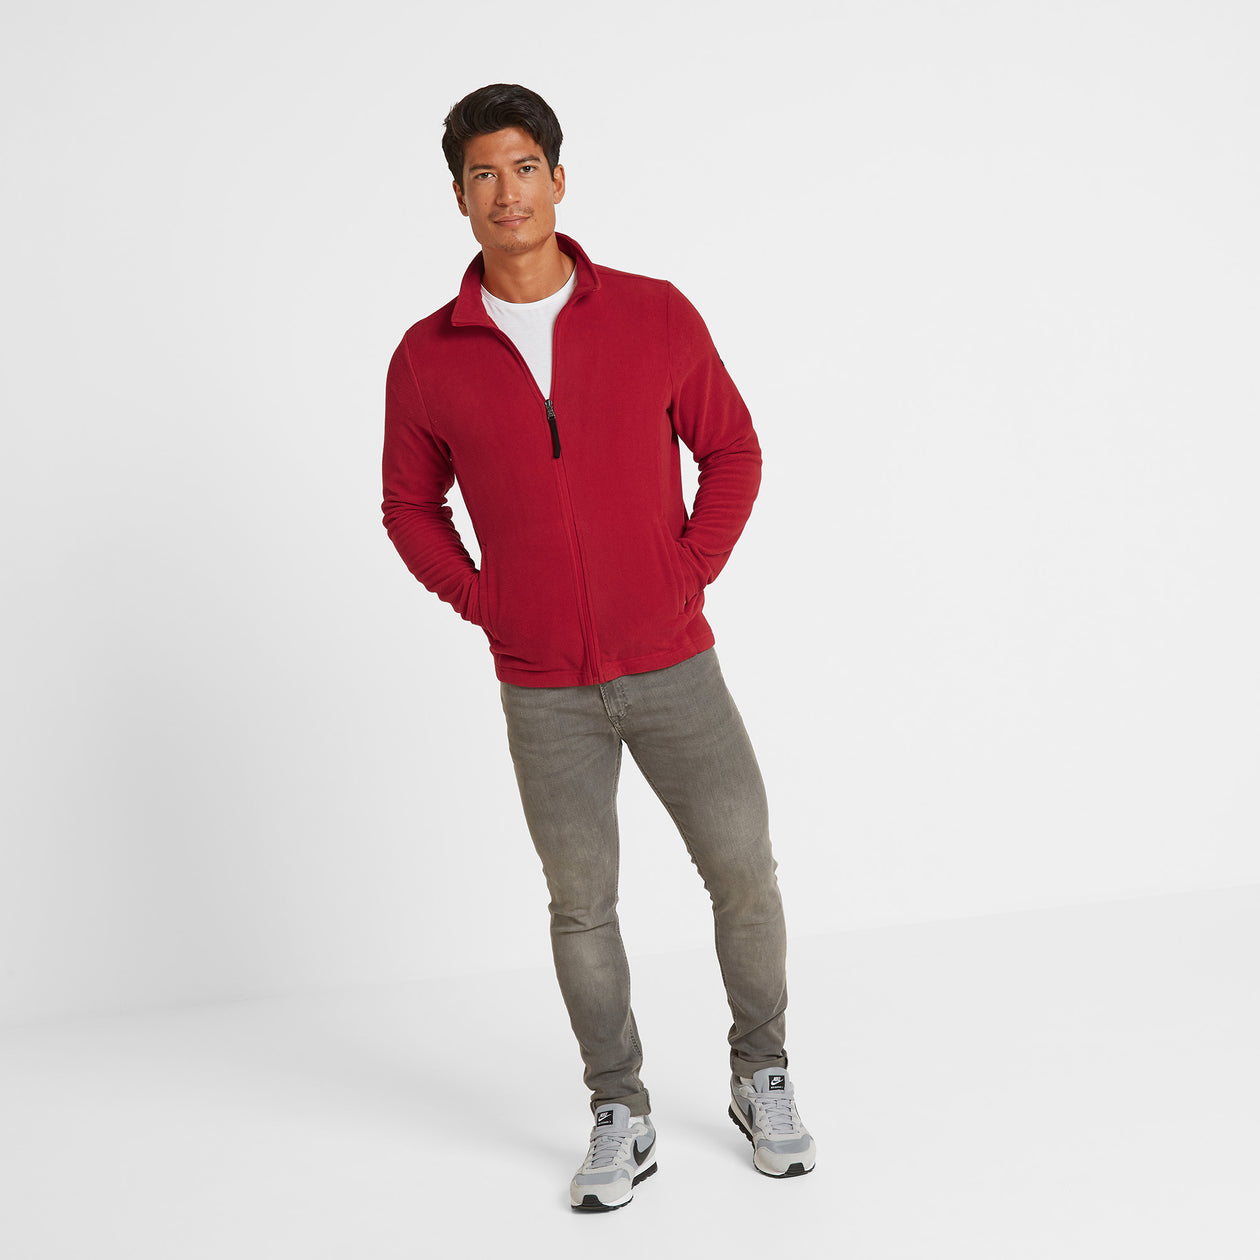 Shire Mens Fleece Jacket - Chilli Red image 4